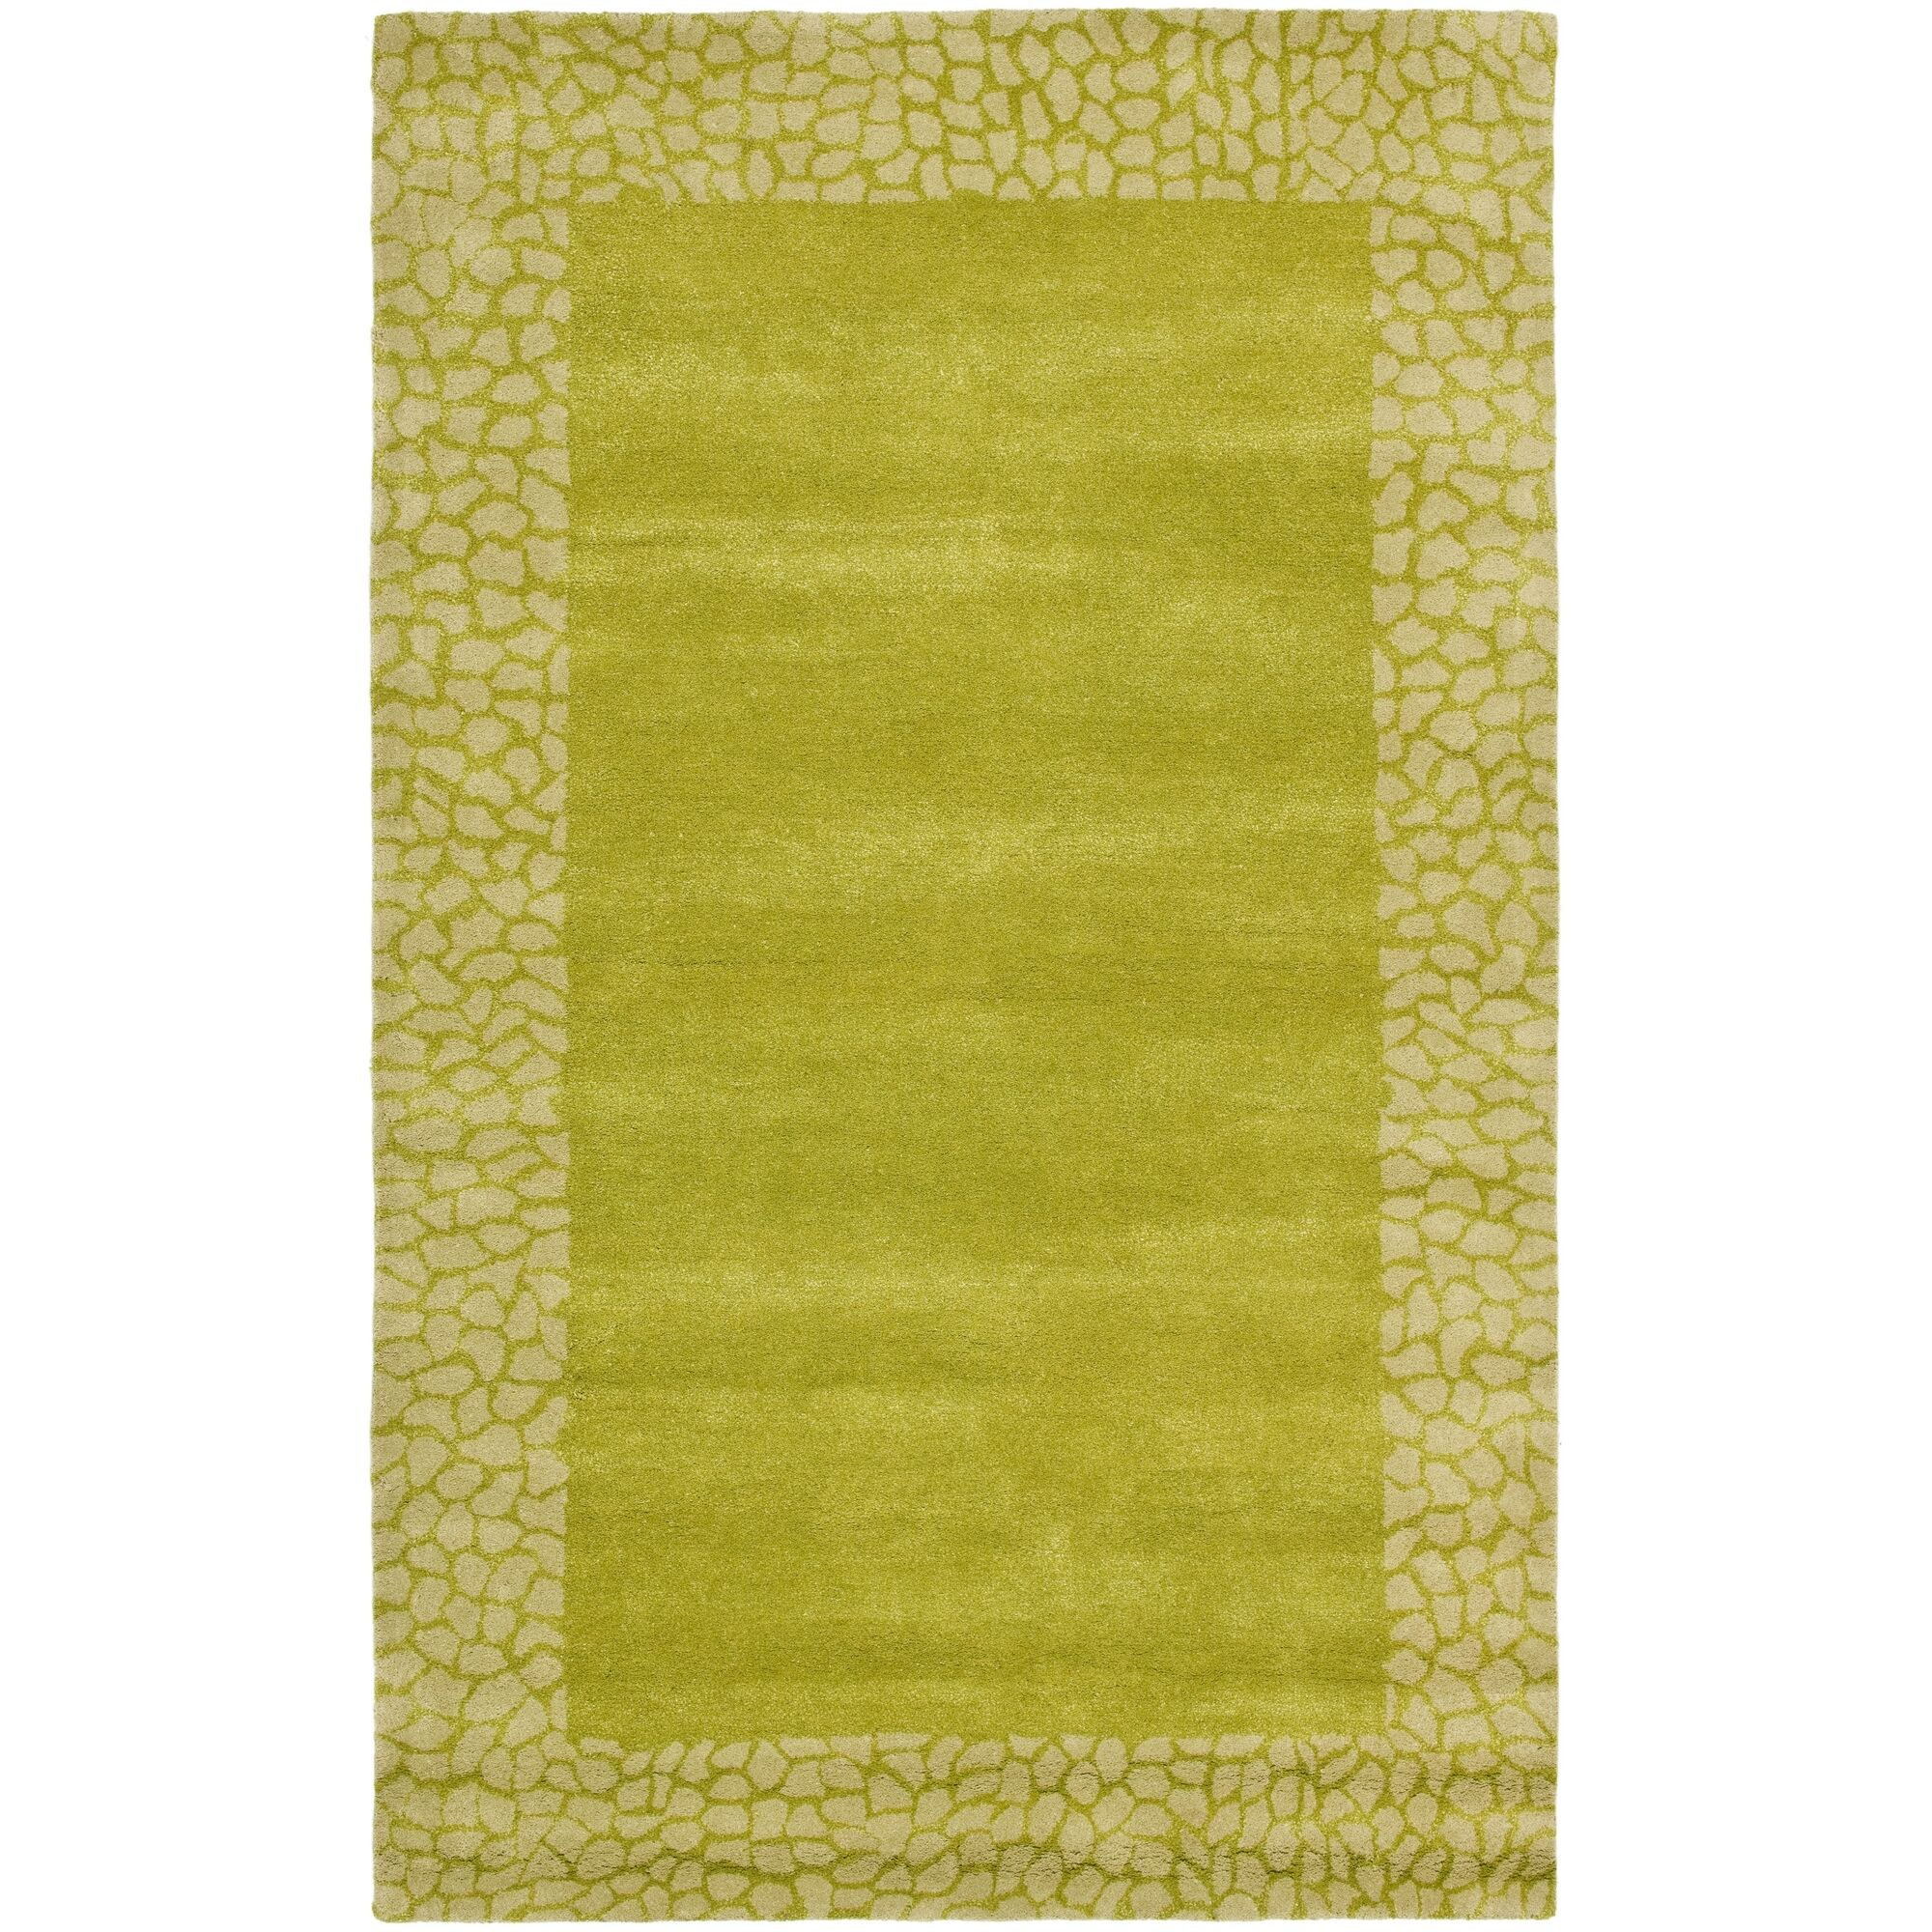 Dorthy Light Green Area Rug Rug Size: Rectangle 5' x 8'